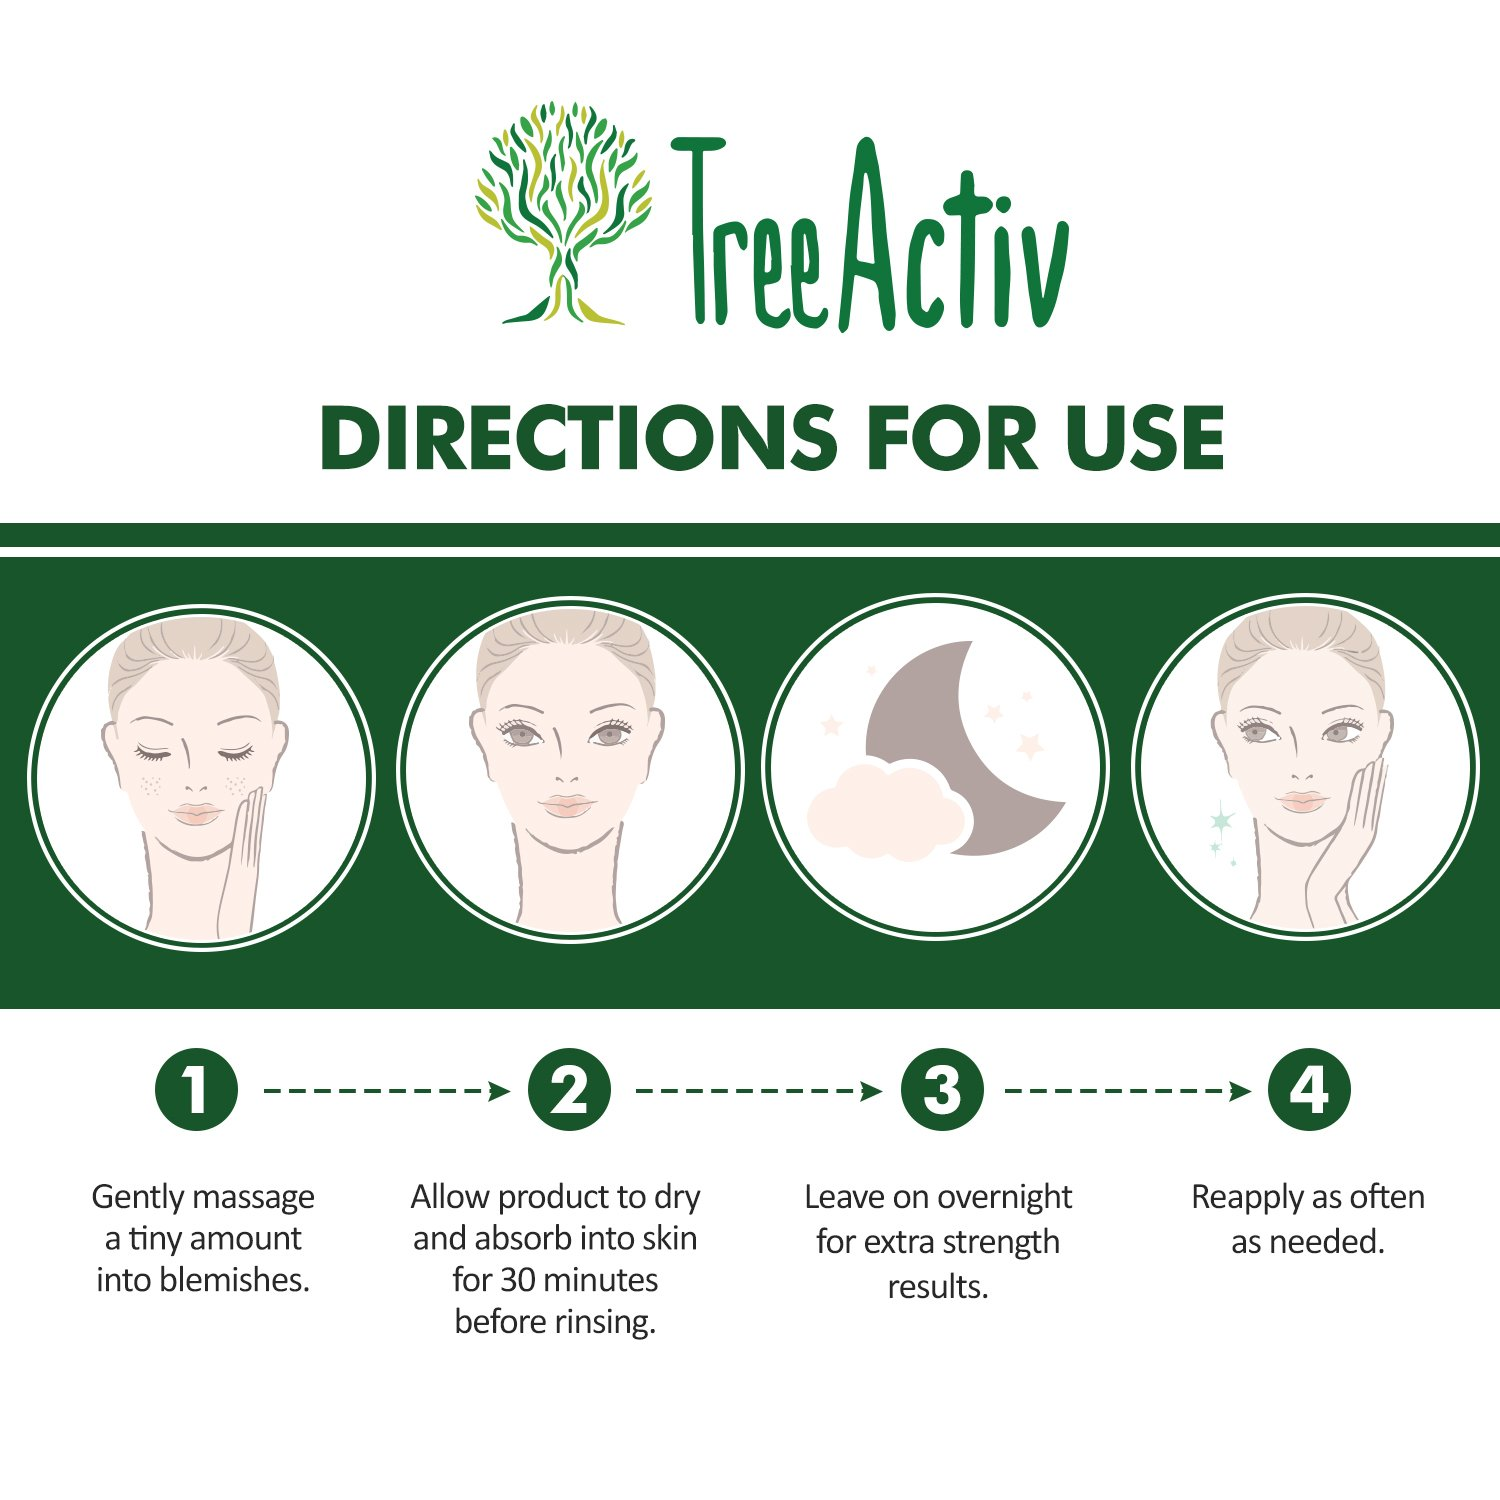 TreeActiv Cystic Acne Spot Treatment, Best Extra Strength Fast Acting Formula for Clearing Severe Acne from Face and Body, Gentle Enough for Sensitive Skin, Adults, Teens, Men, Women (0.25 Ounce) by TreeActiv (Image #7)